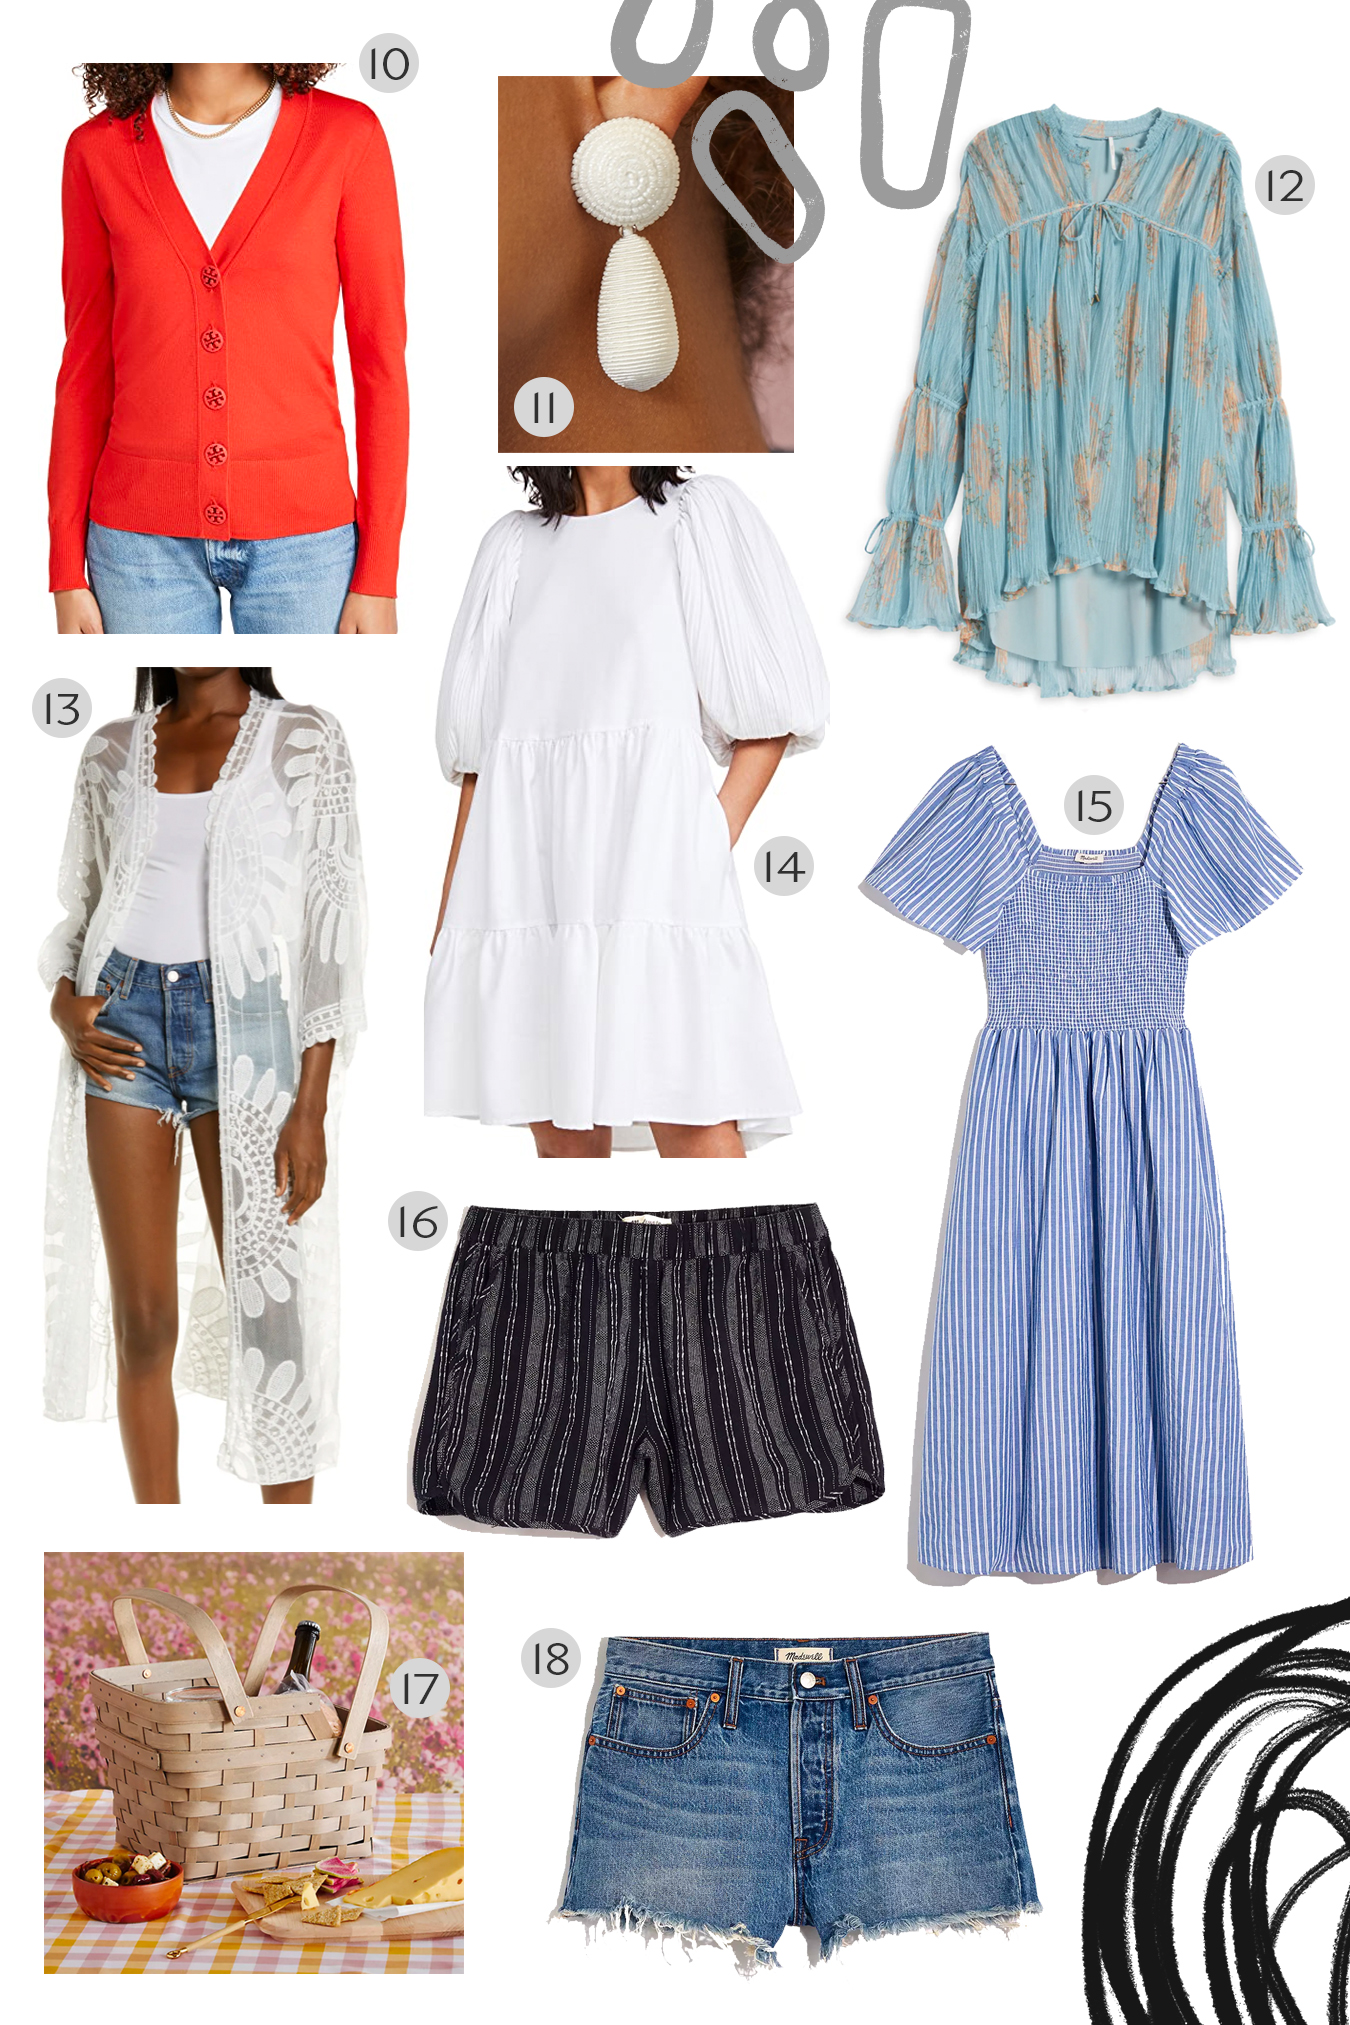 spring outfits and accessories